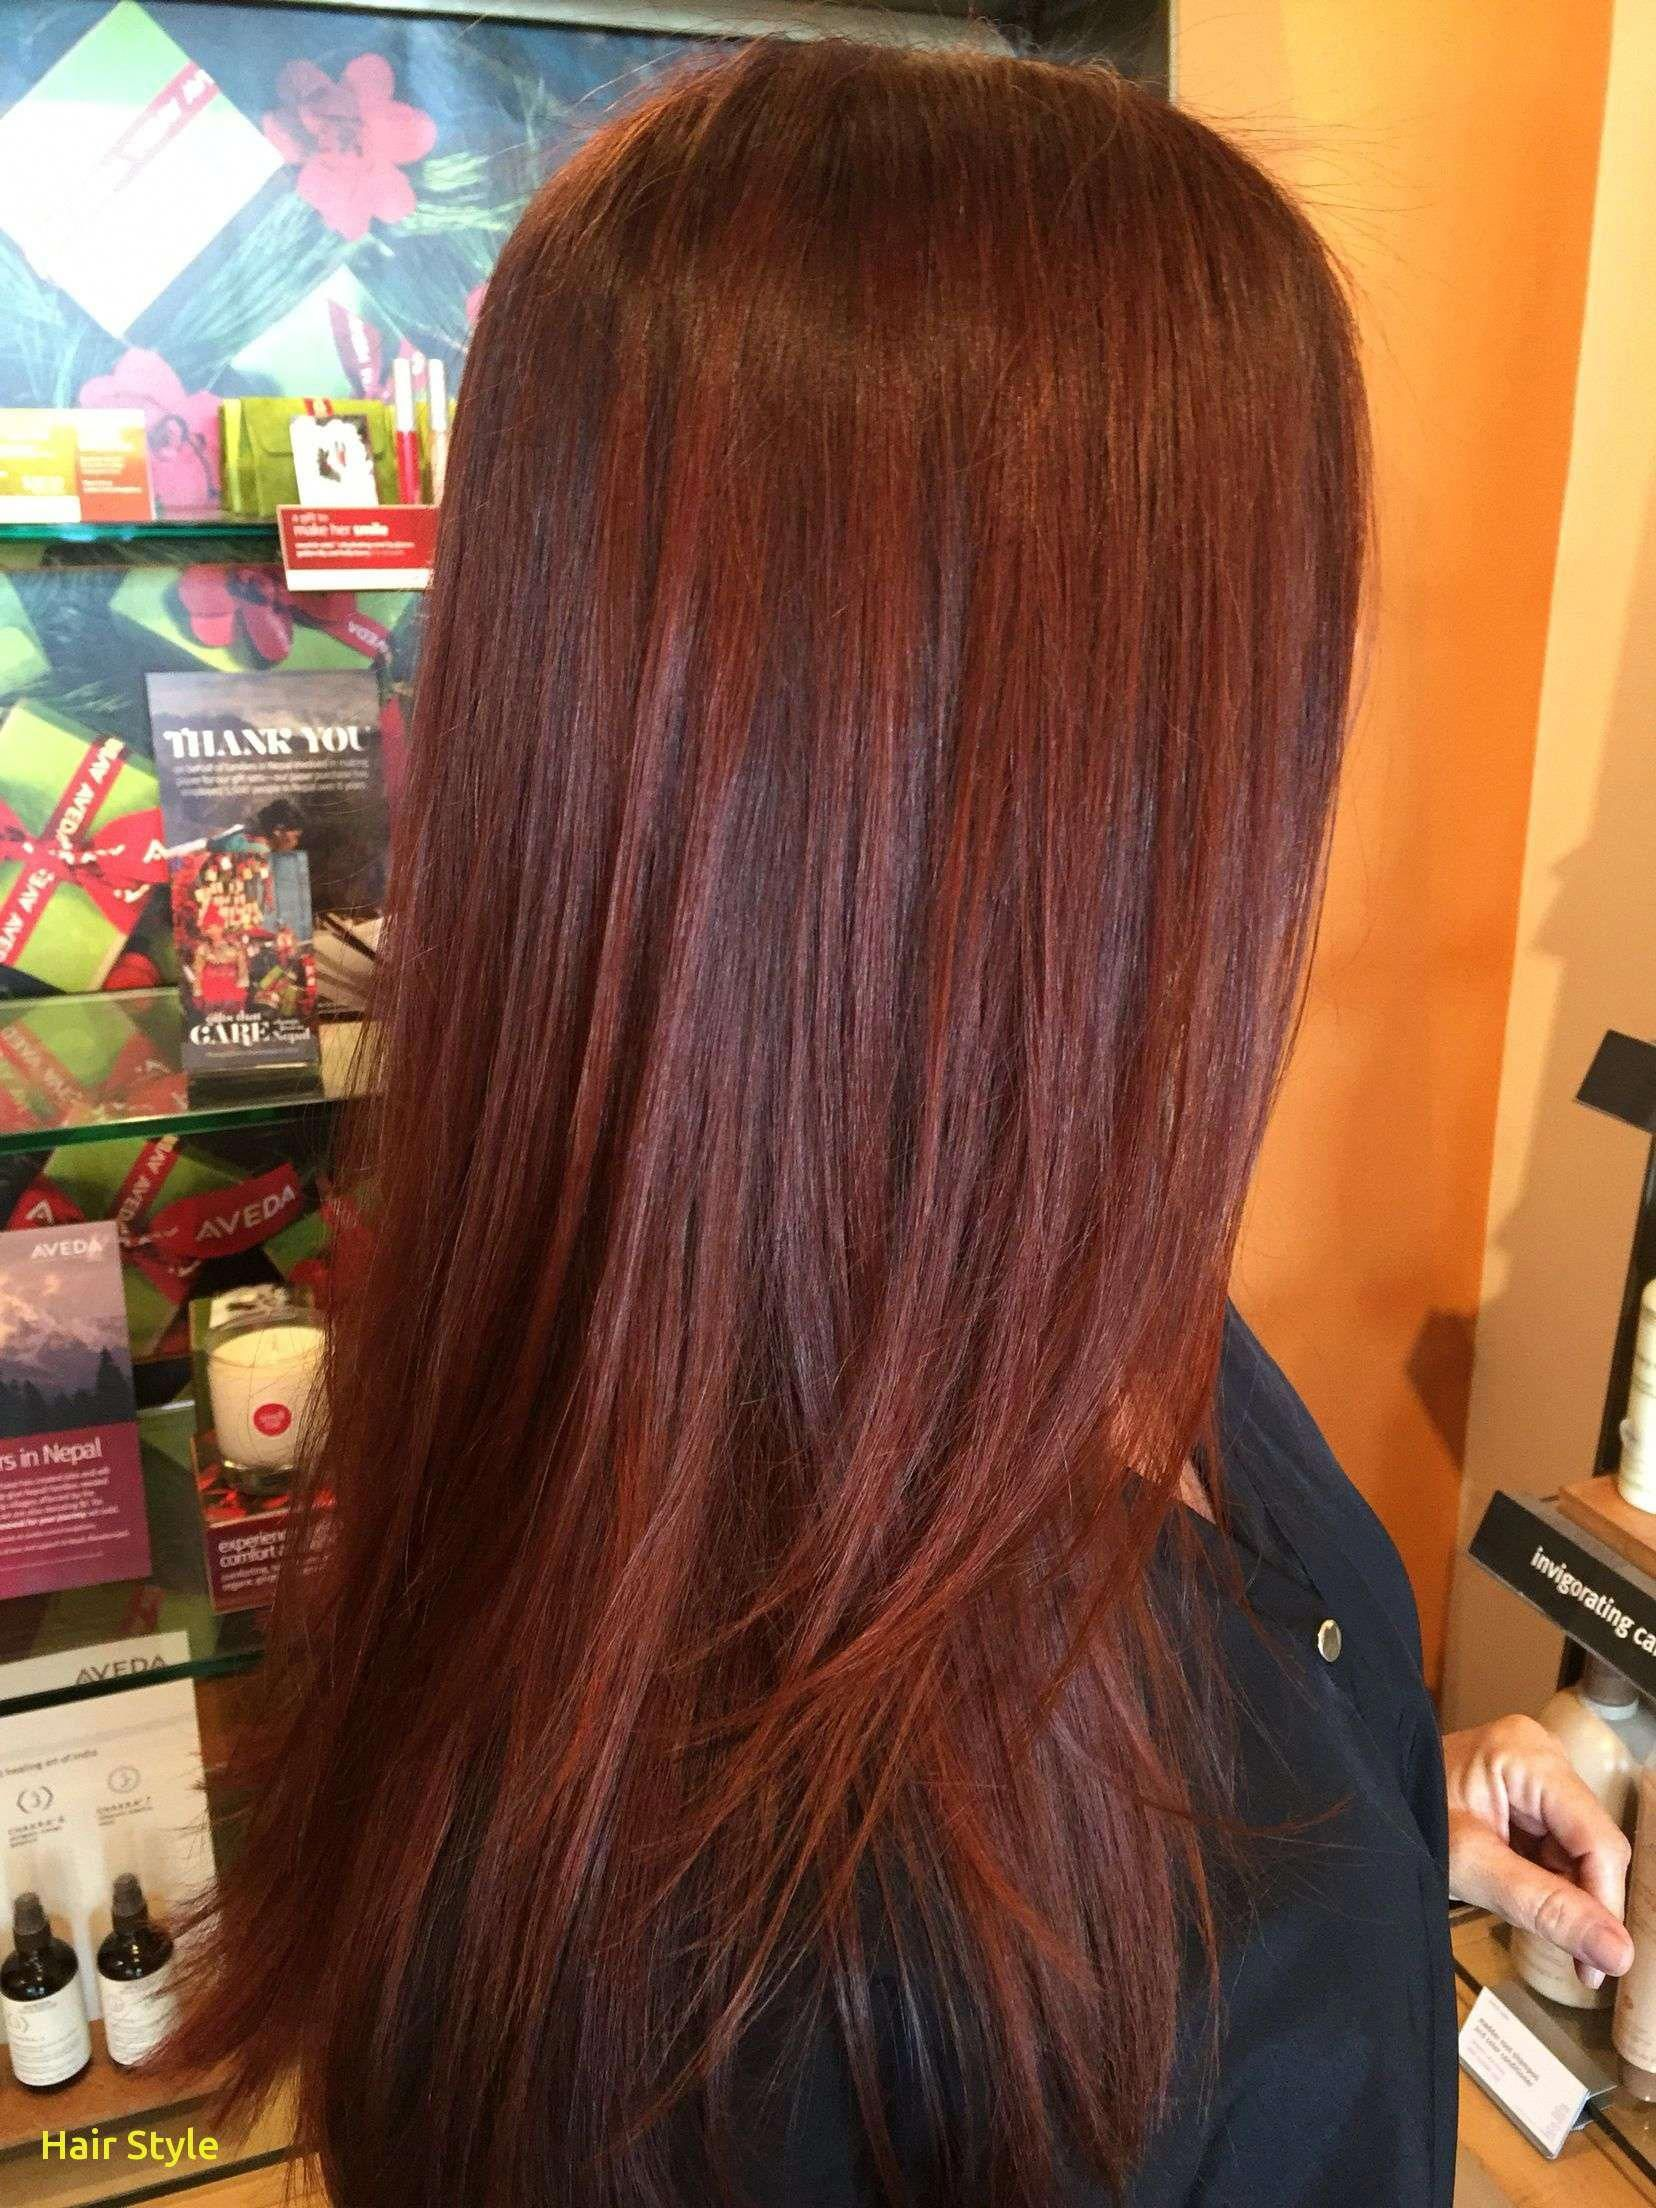 Teasing And Draping Sections Of Your Hair Prior To They Are Added To The Hair Tie Give Extra Dimension And Dep Aveda Hair Color Deep Red Hair Hair Color Auburn